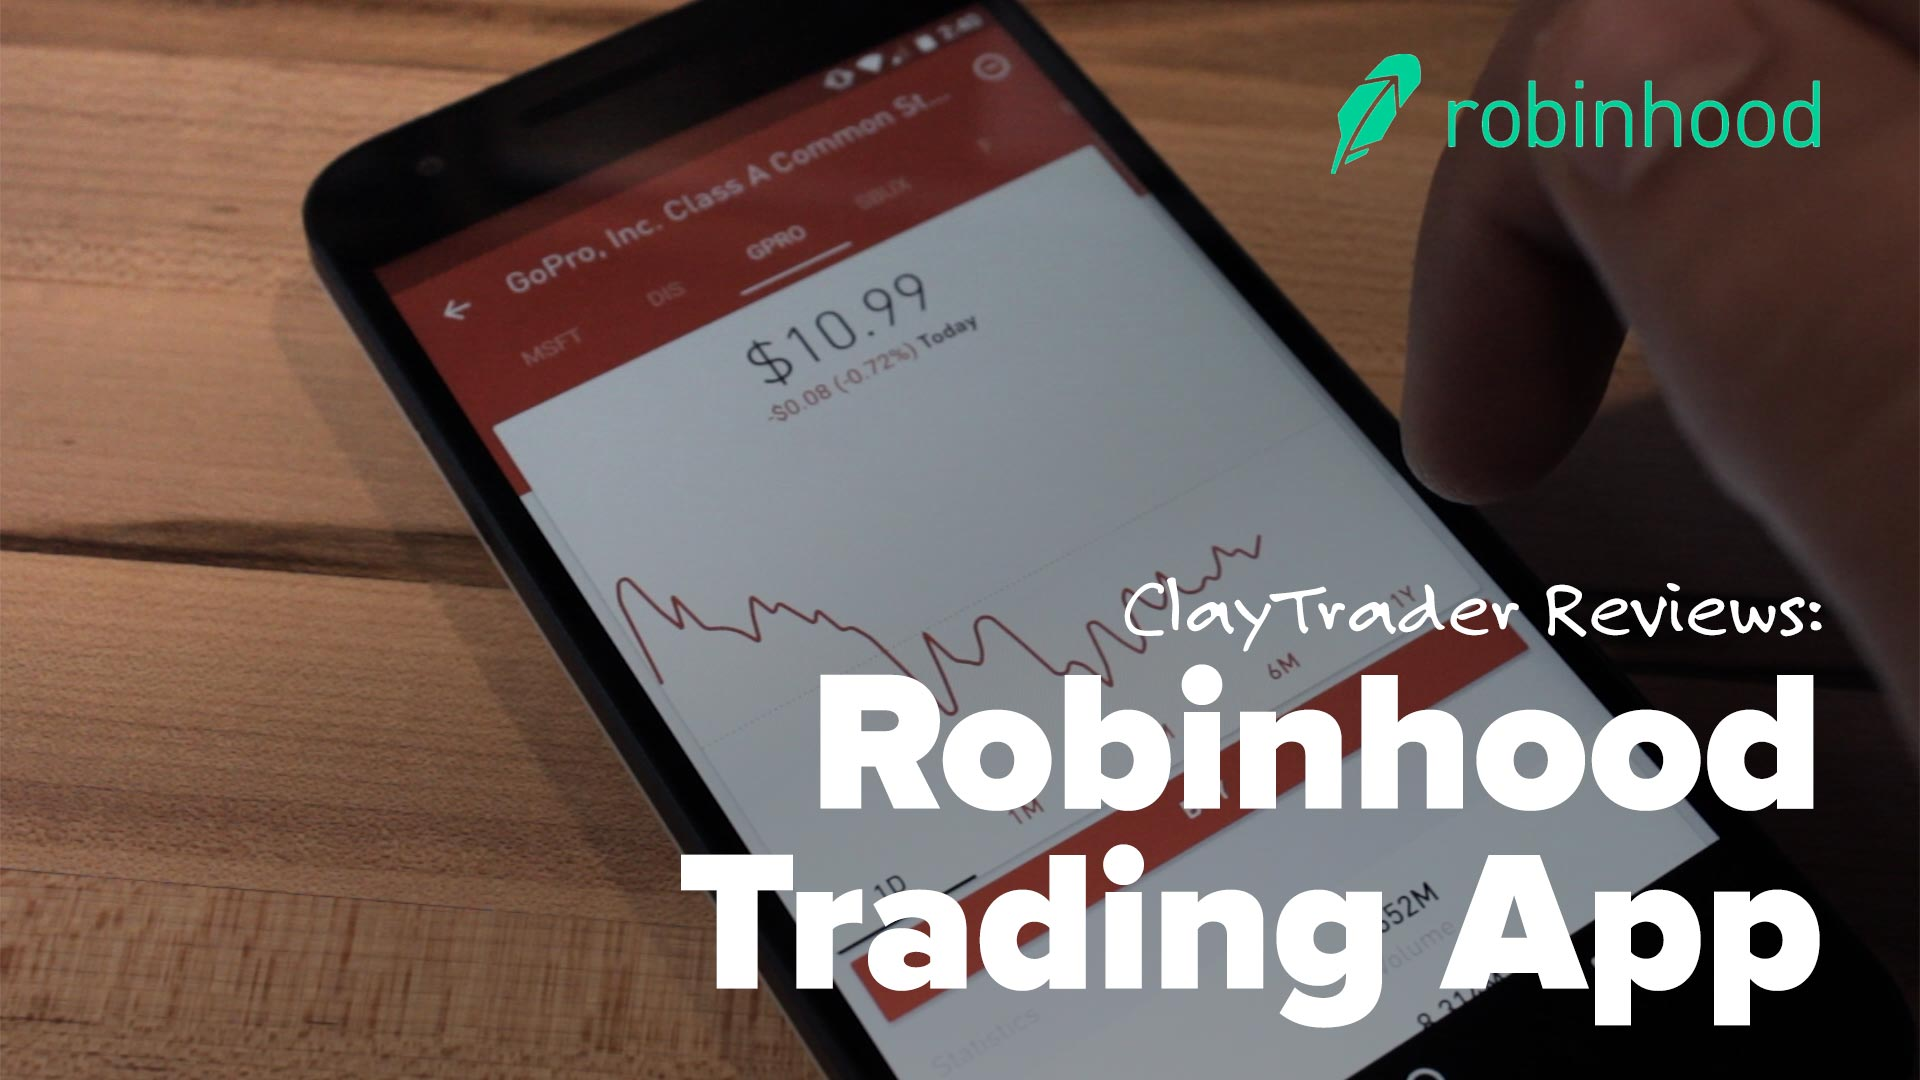 Robinhood Height In Cm